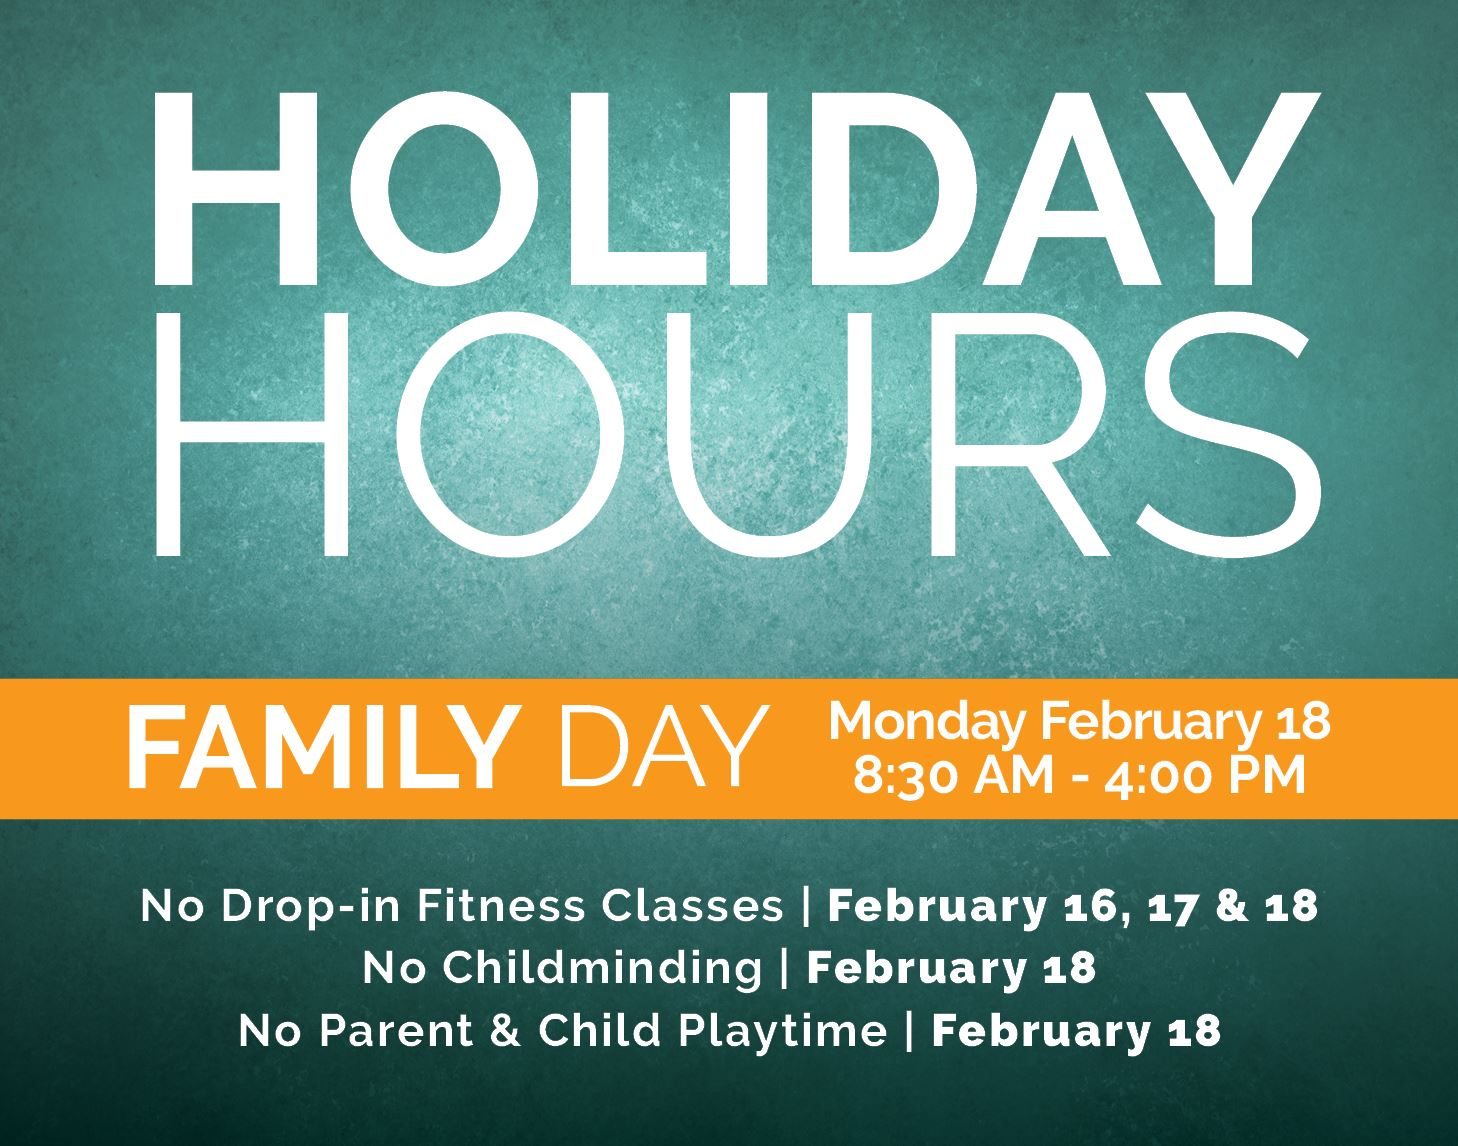 Holiday Hours for Family Day